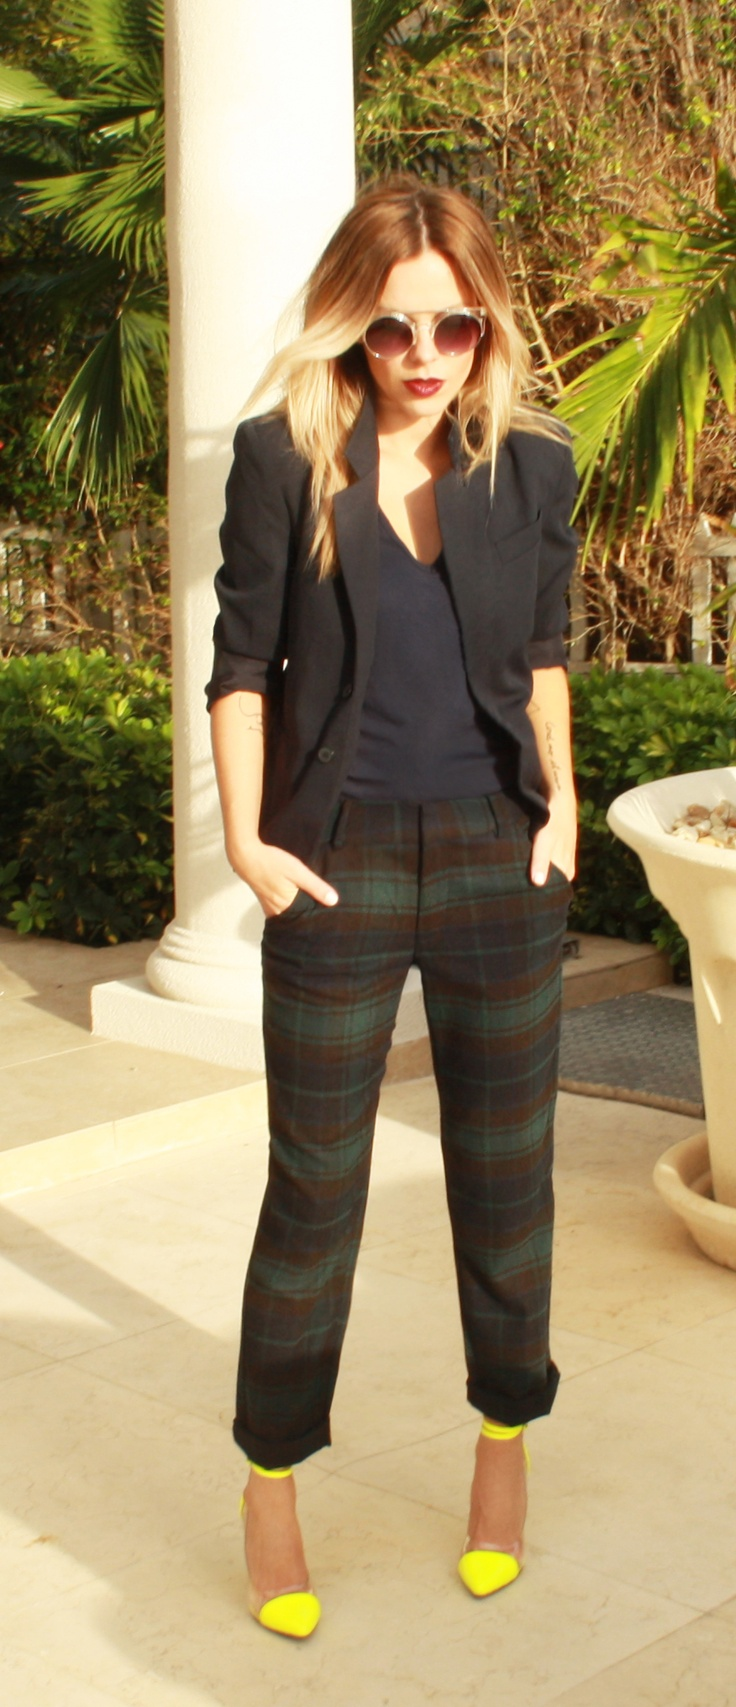 Plaid pants / neon pumps / navy blazer